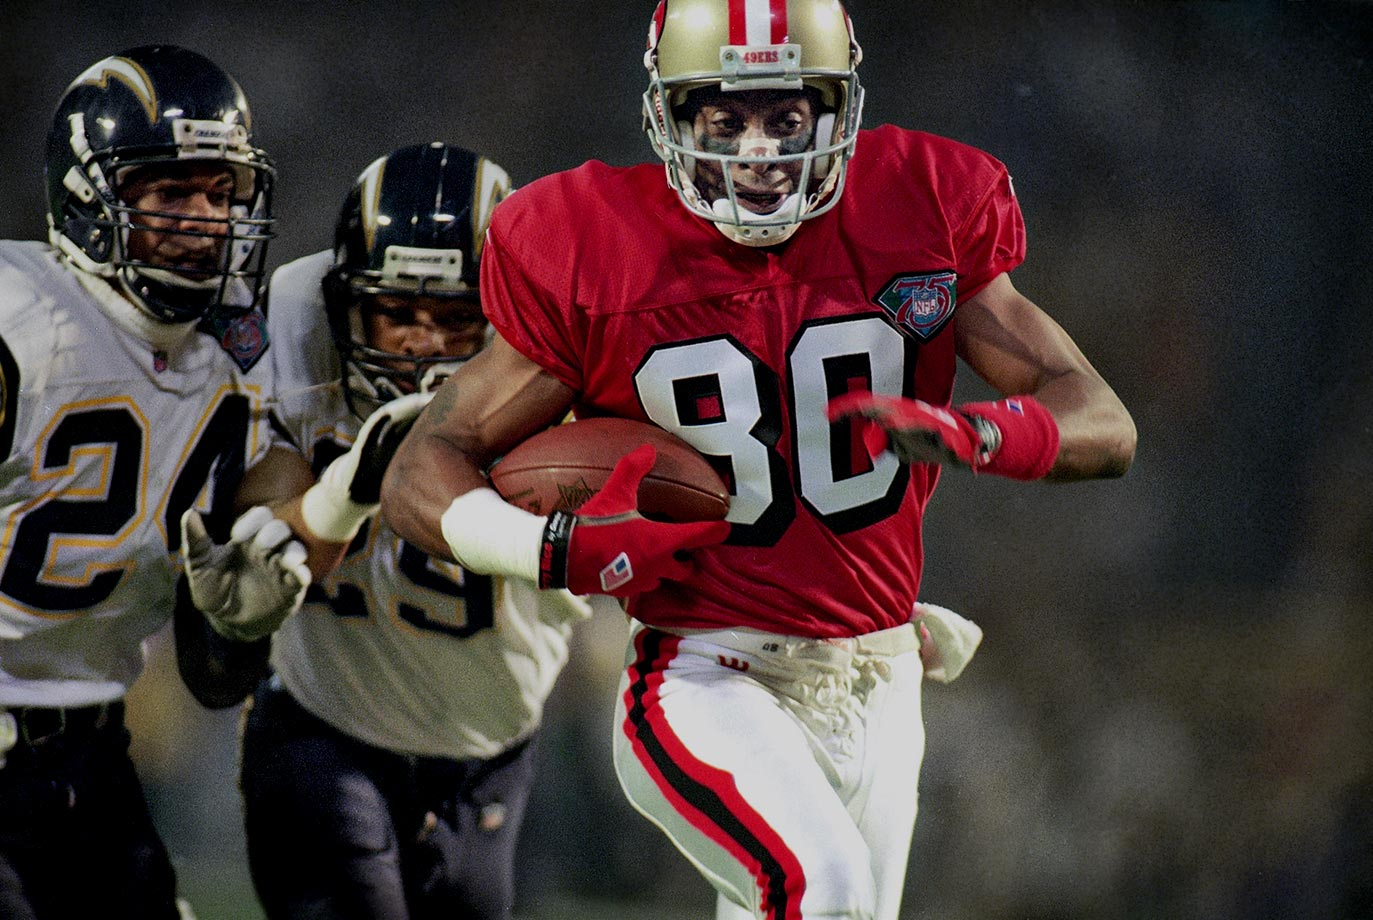 Jan. 29, 1995 — Super Bowl XXIX (San Francisco 49ers vs. San Diego Chargers)